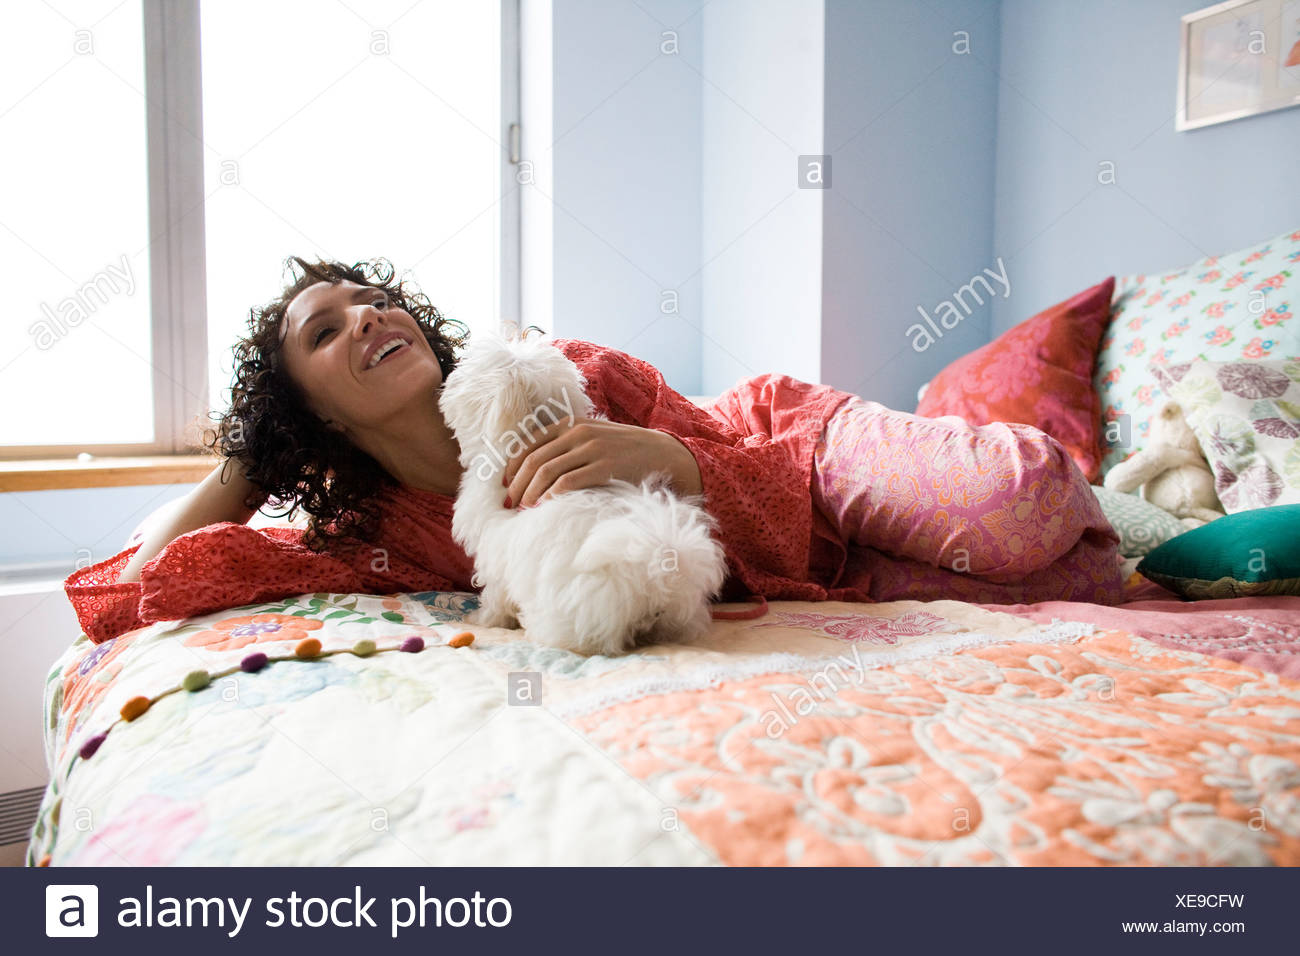 woman lying on a bed - Stock Image